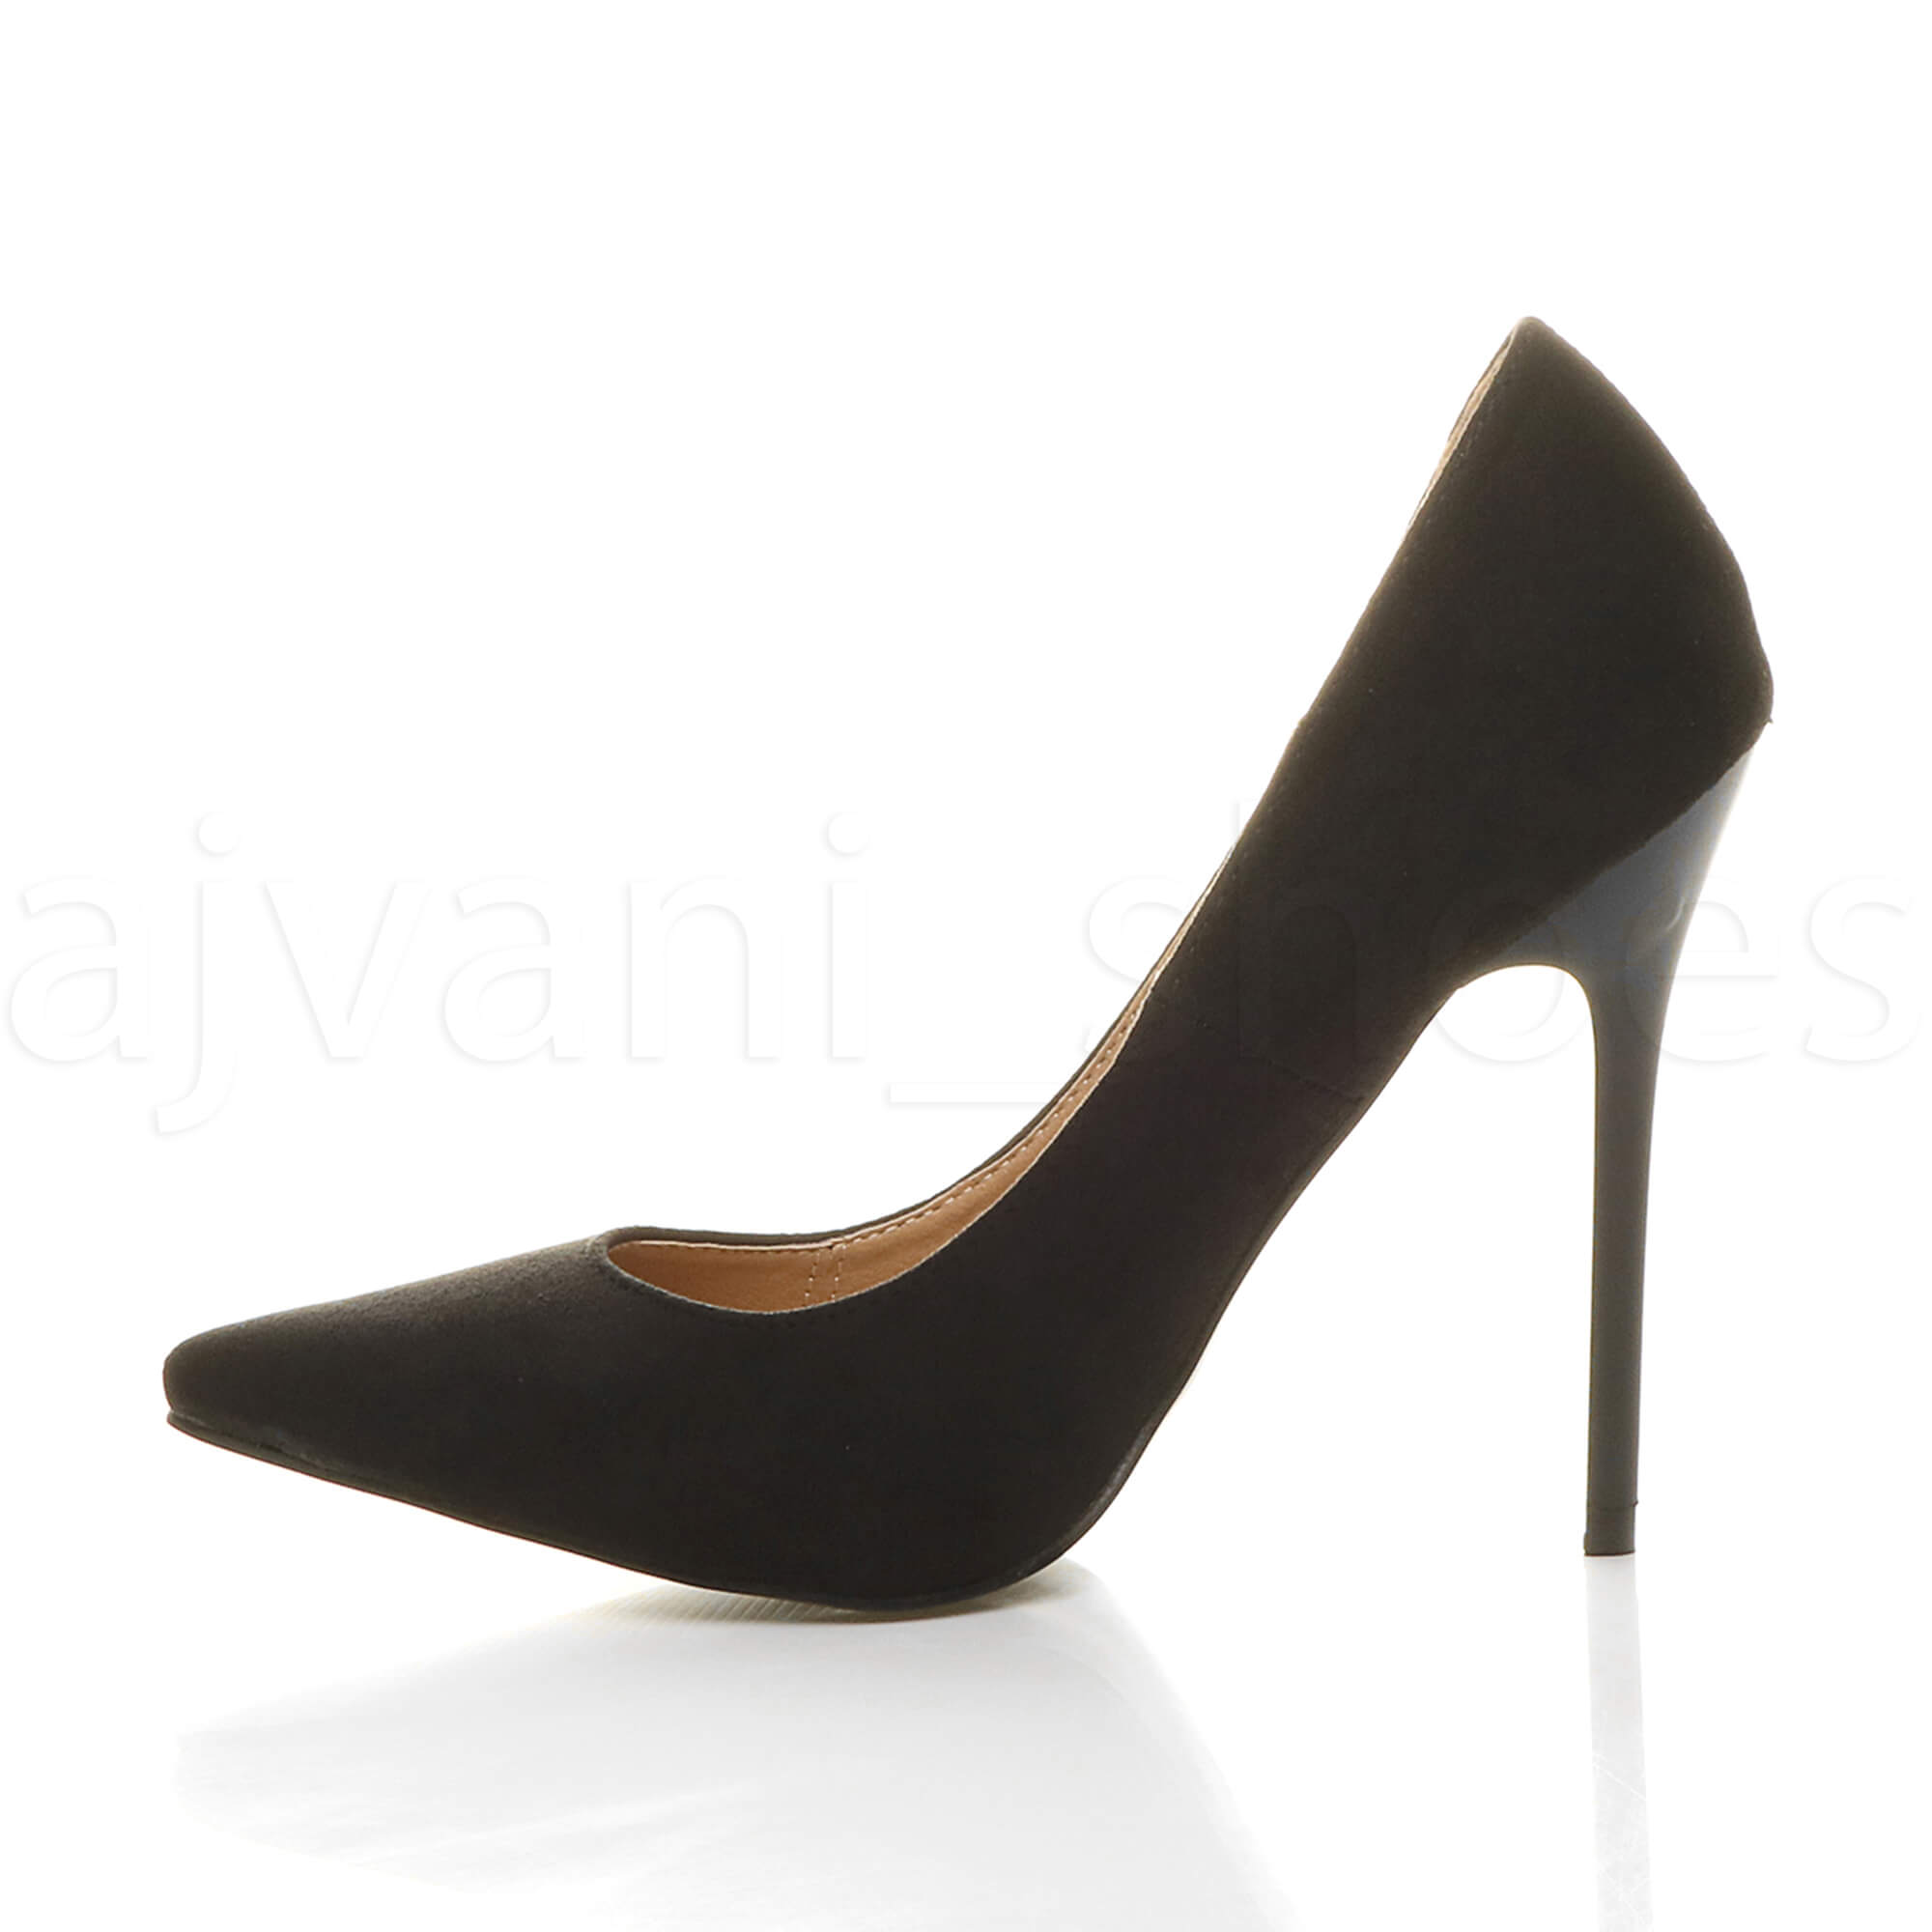 WOMENS-LADIES-HIGH-HEEL-POINTED-CONTRAST-COURT-SMART-PARTY-WORK-SHOES-PUMPS-SIZE thumbnail 28